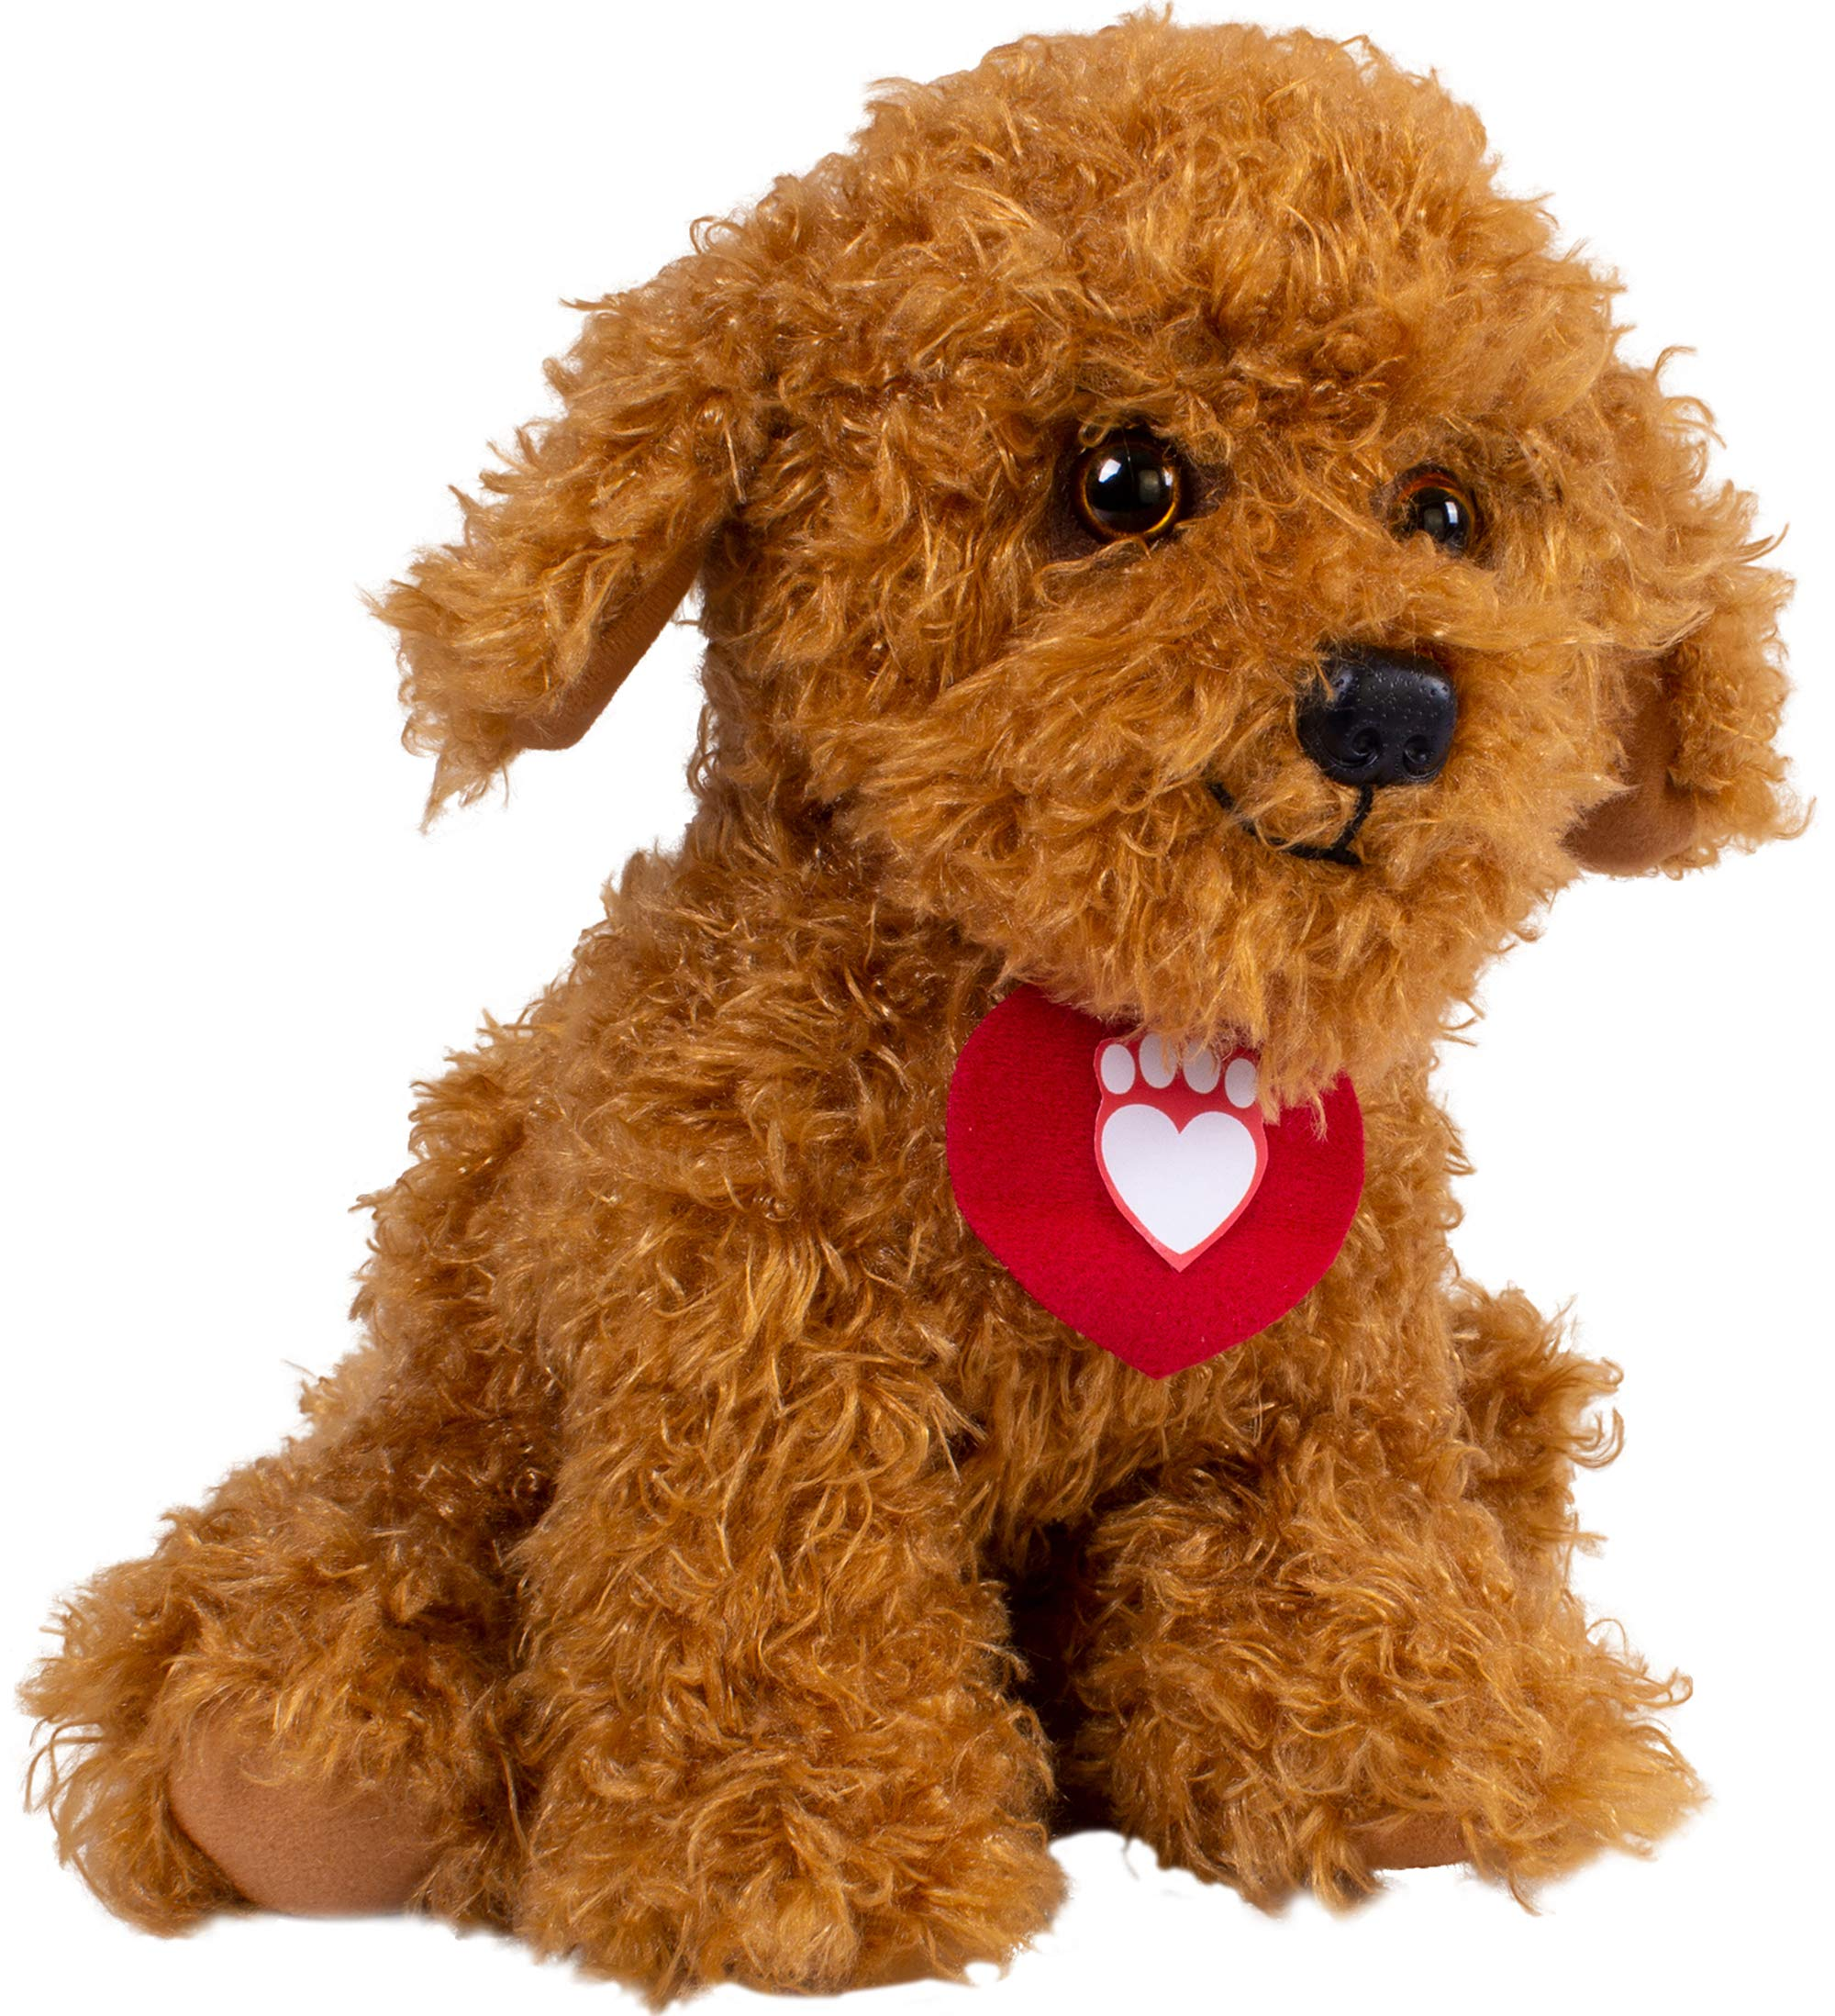 Waffle the Wonder Dog Soft Toy with Sounds 3